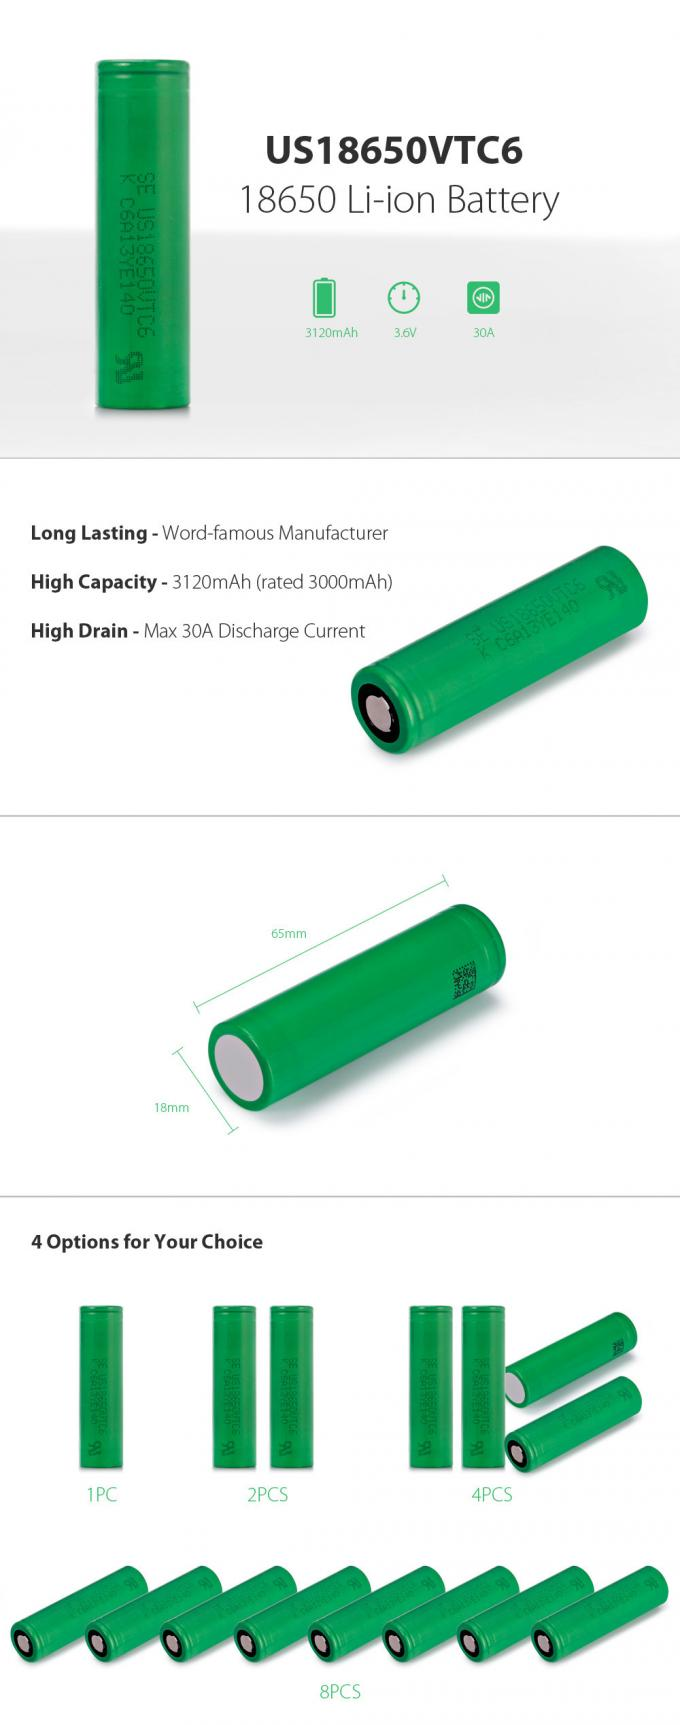 SONY VTC6 18650 Battery 3120mAh 3.6V Li-Ion Battery , Discharge Current 30A High Drain